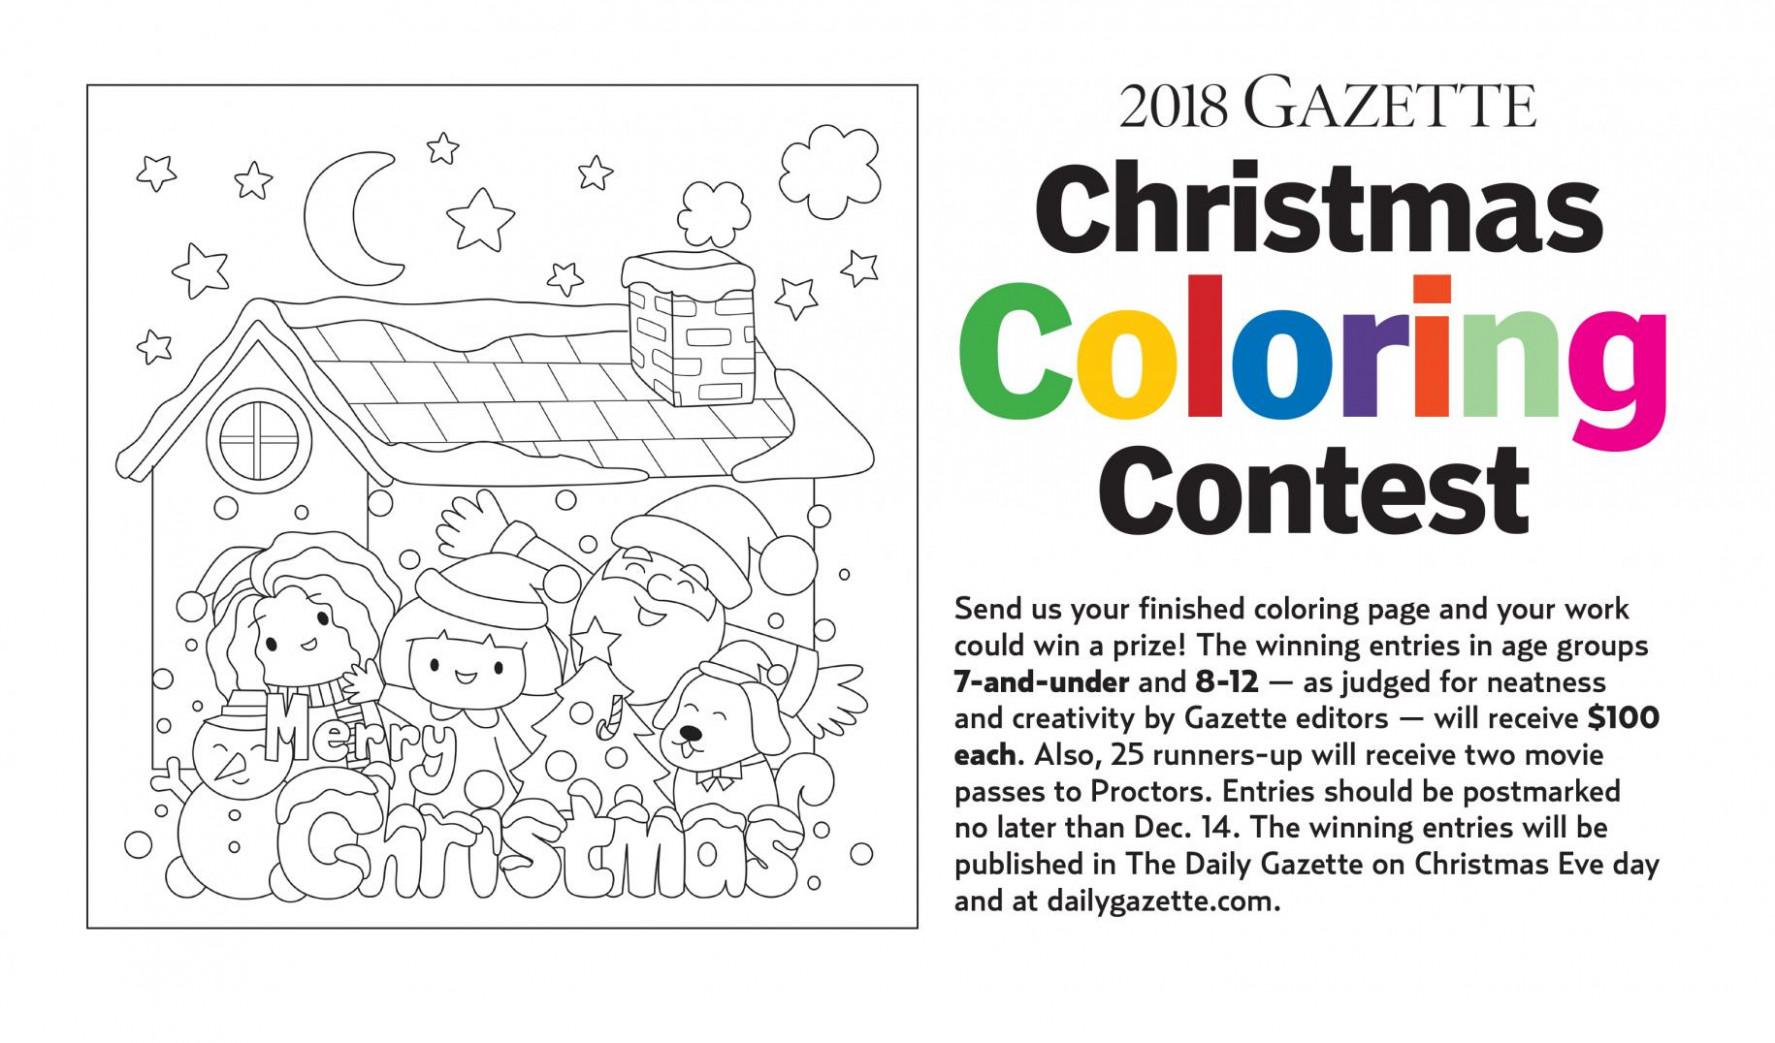 Gazette Christmas Coloring Contest under way | The Daily Gazette – Christmas Coloring Contest